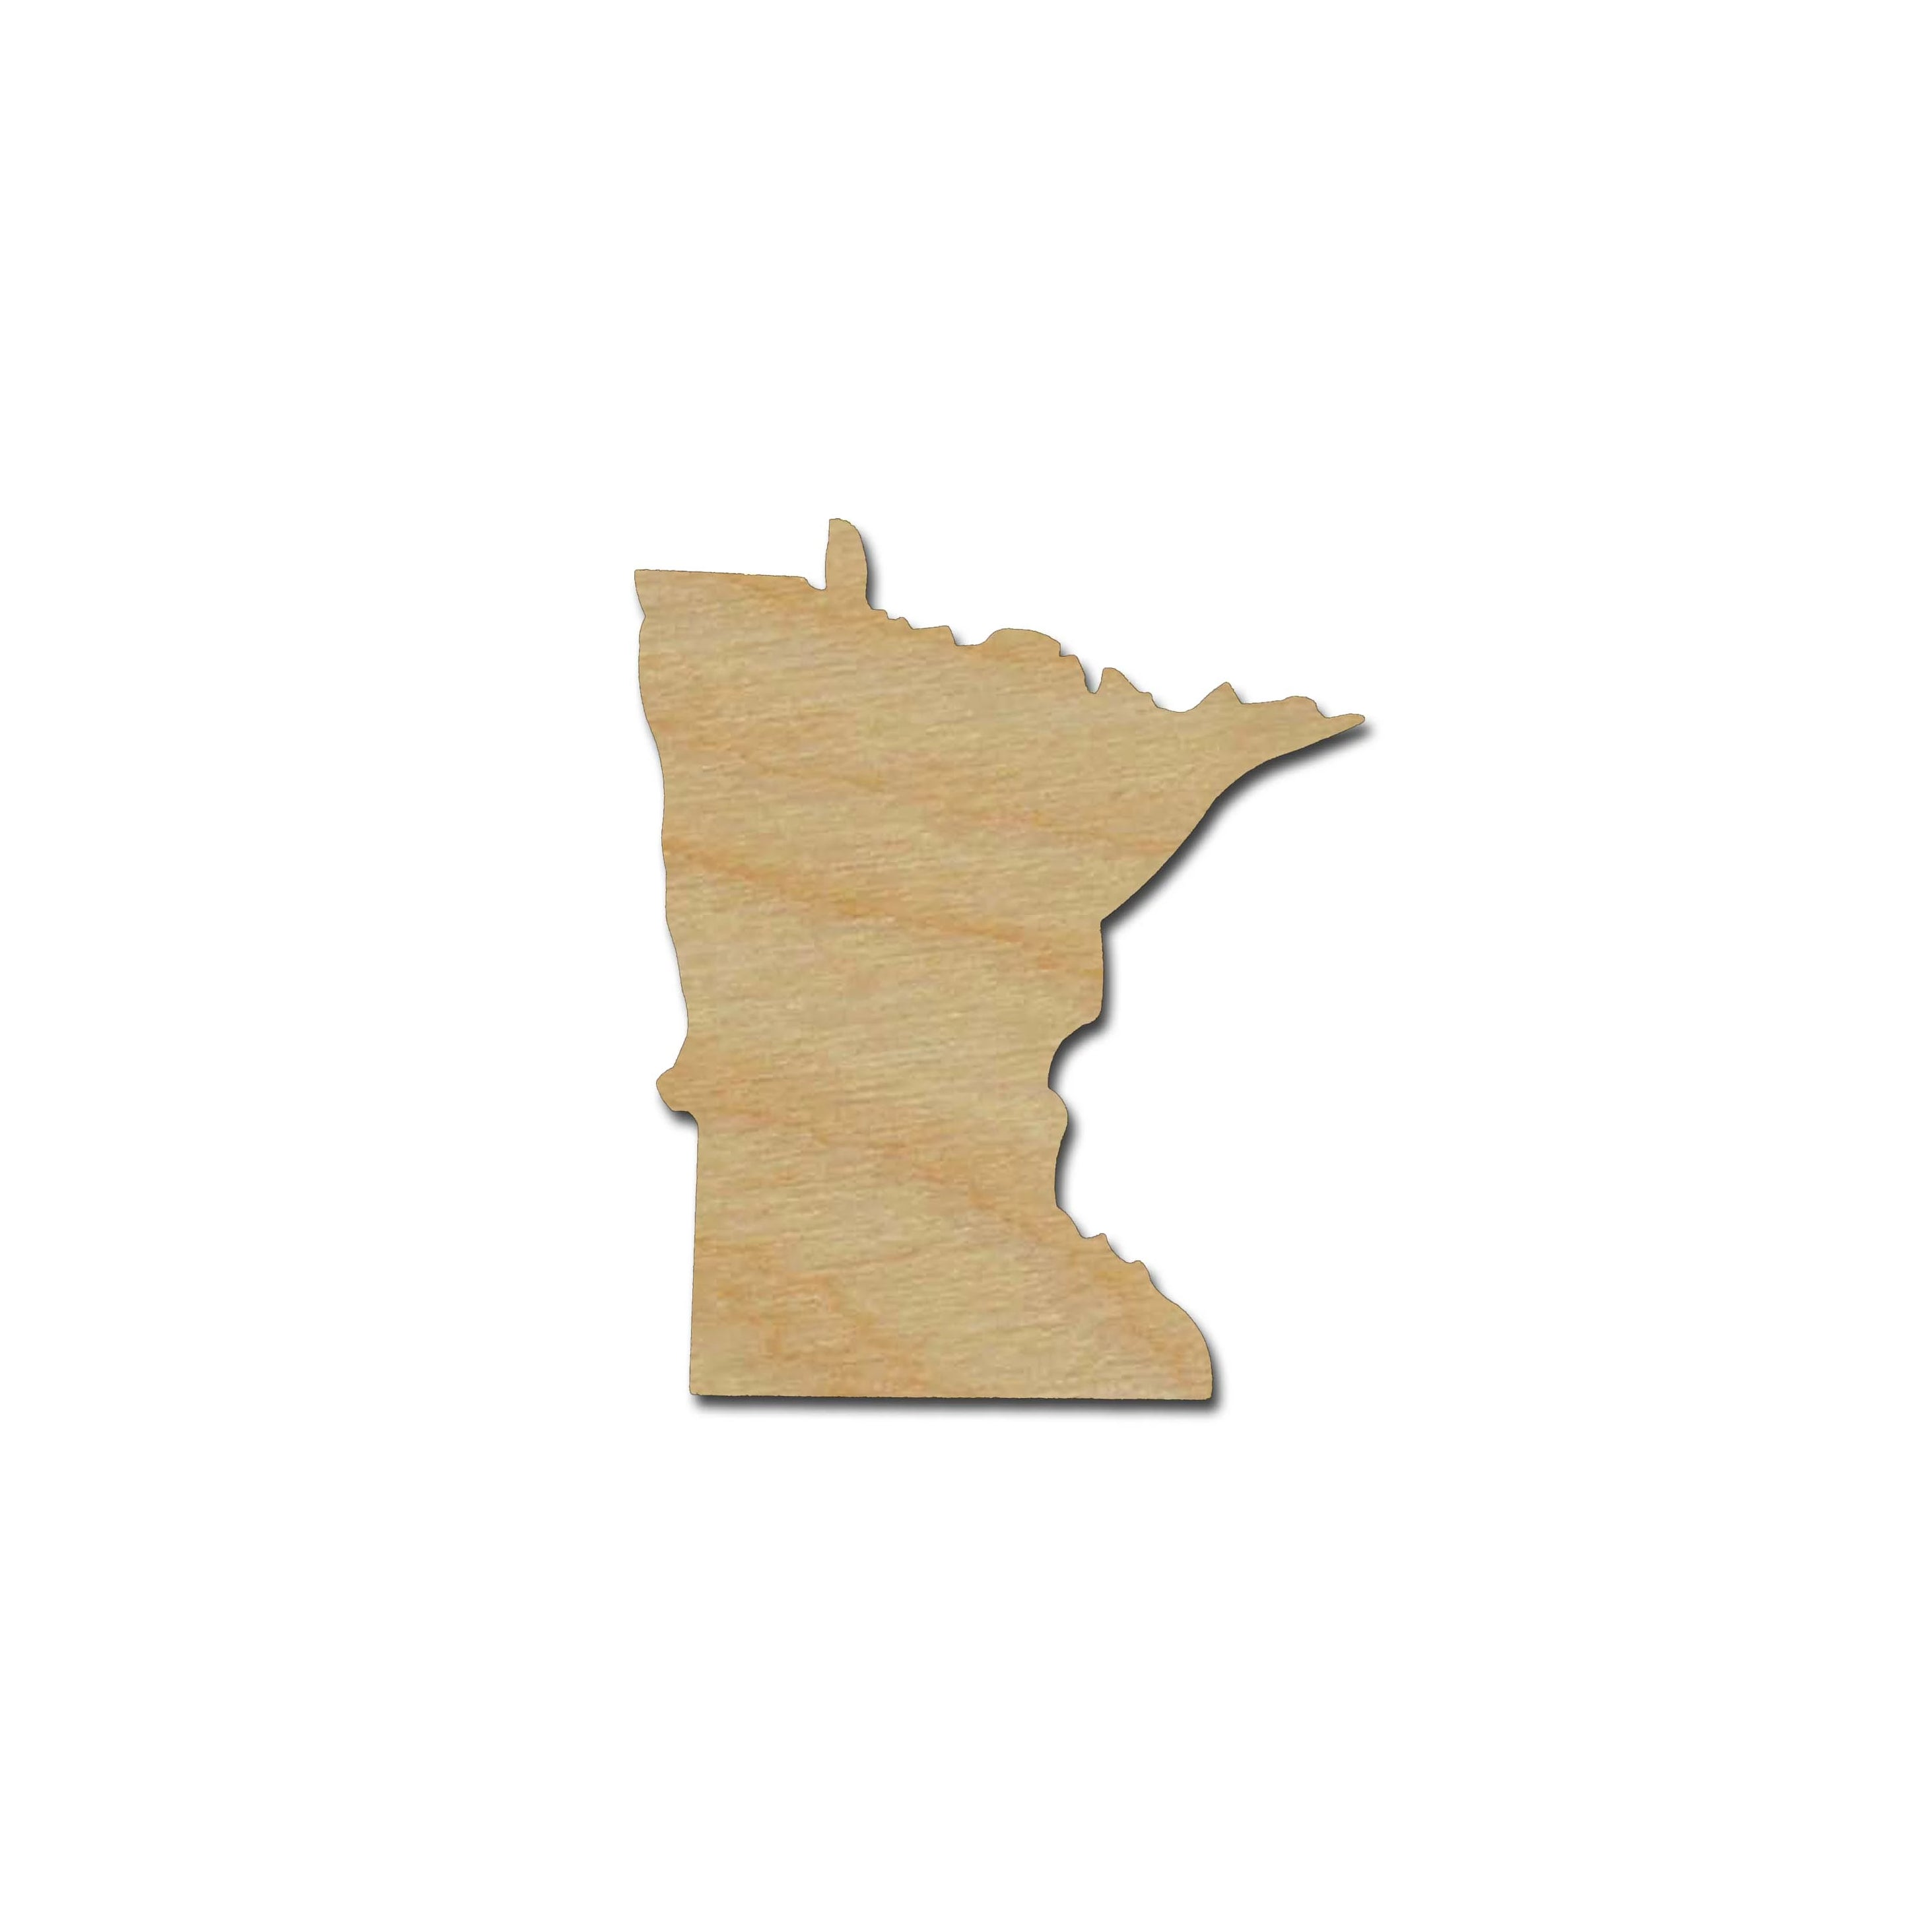 Minnesota State Unfinished Wood Cut Out